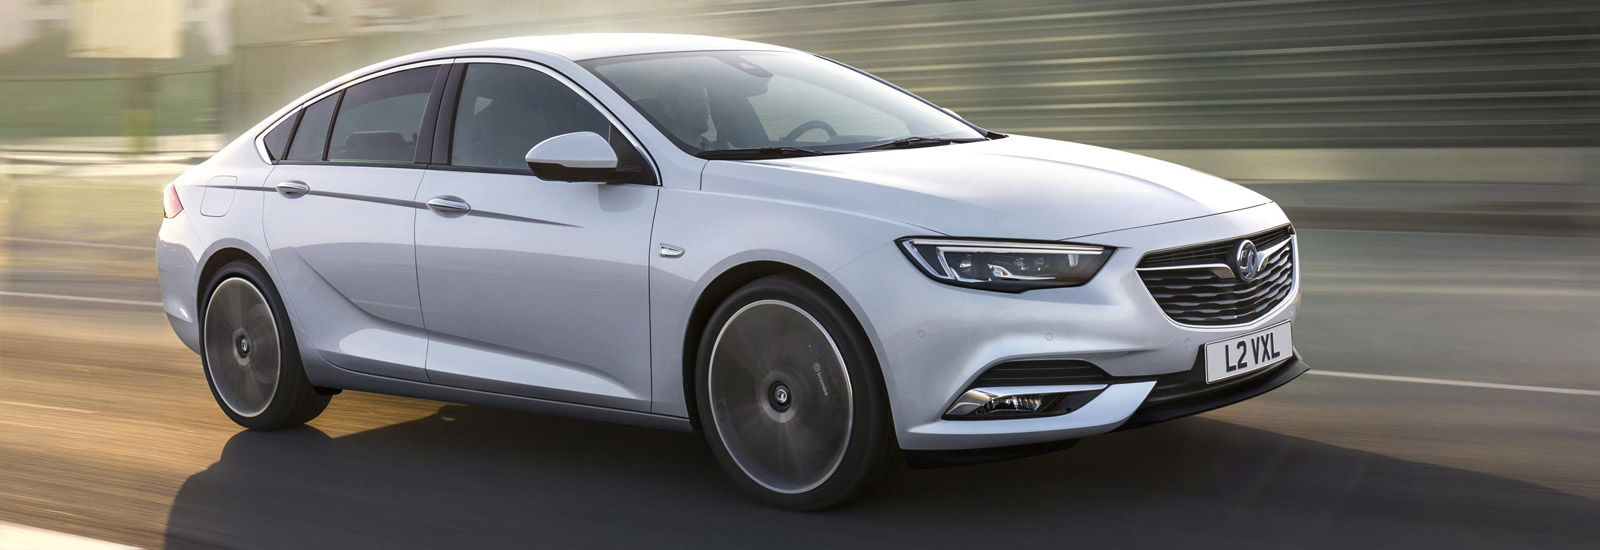 2017 vauxhall insignia price specs release date carwow